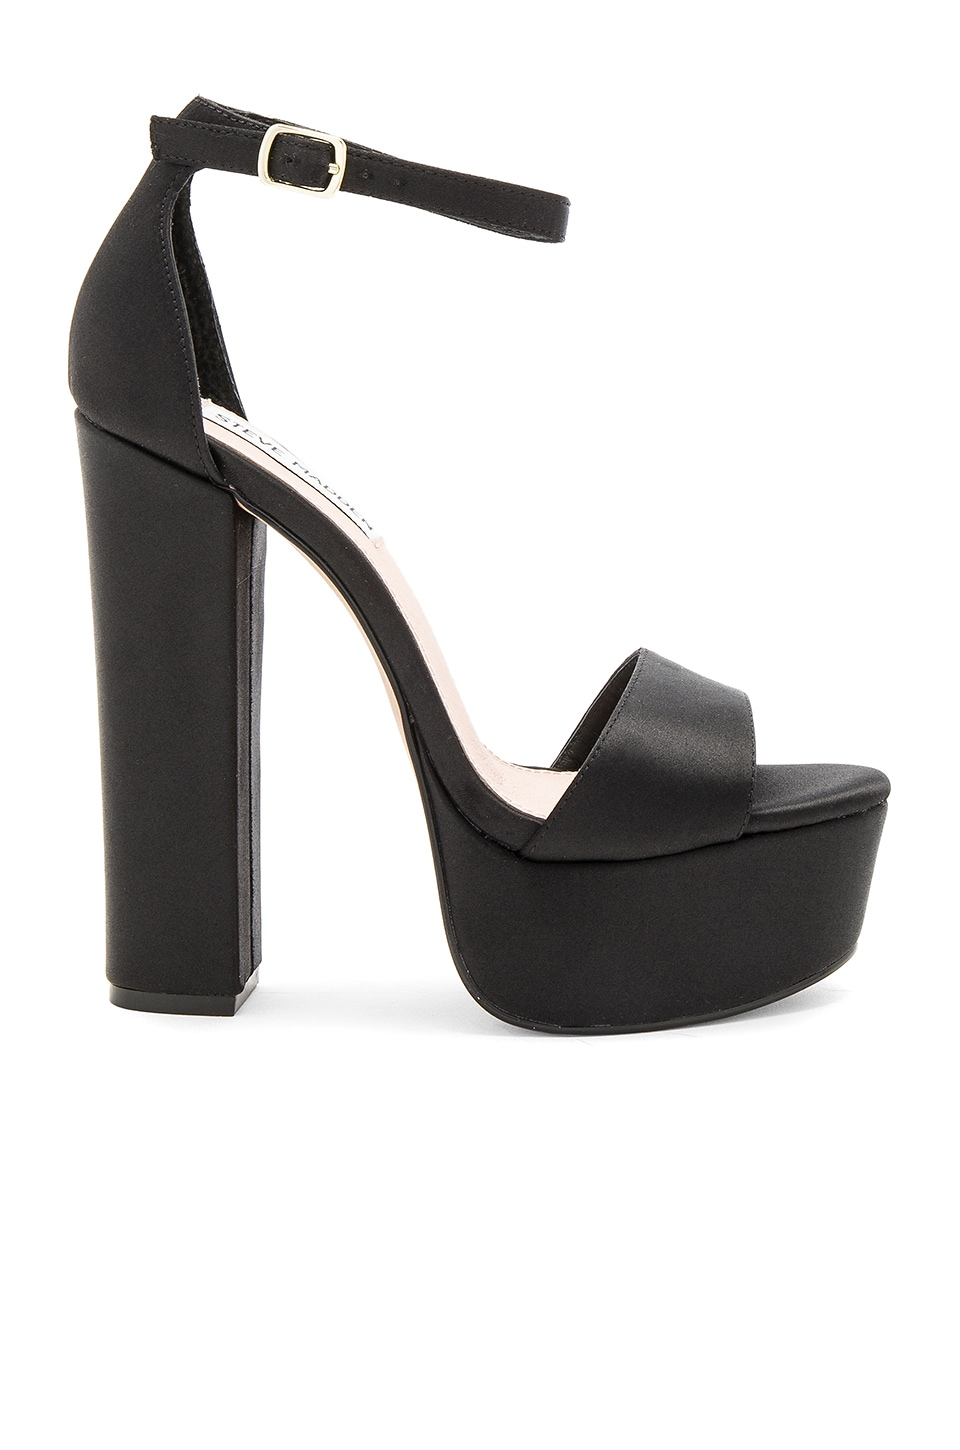 Steve Madden Gonzo Heel in Black Satin